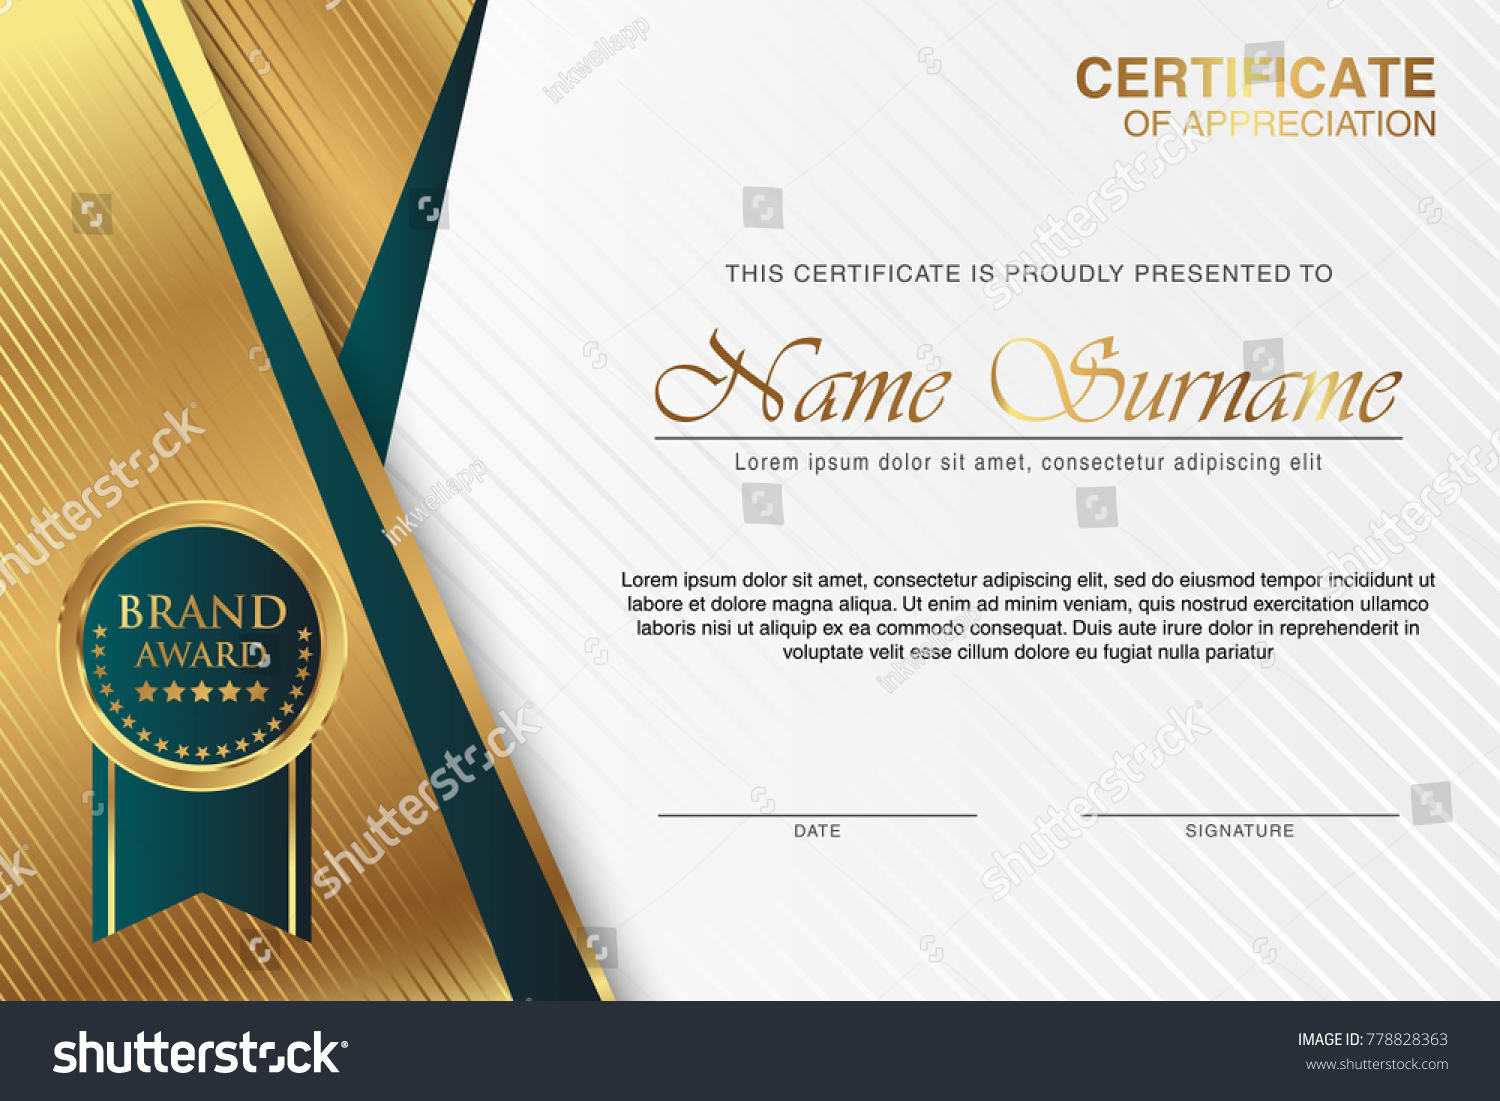 Professional certificate choice image any certificate example ideas multipurpose professional certificate template design print stock multipurpose professional certificate template design for print 1betcityfo choice 1betcityfo Gallery